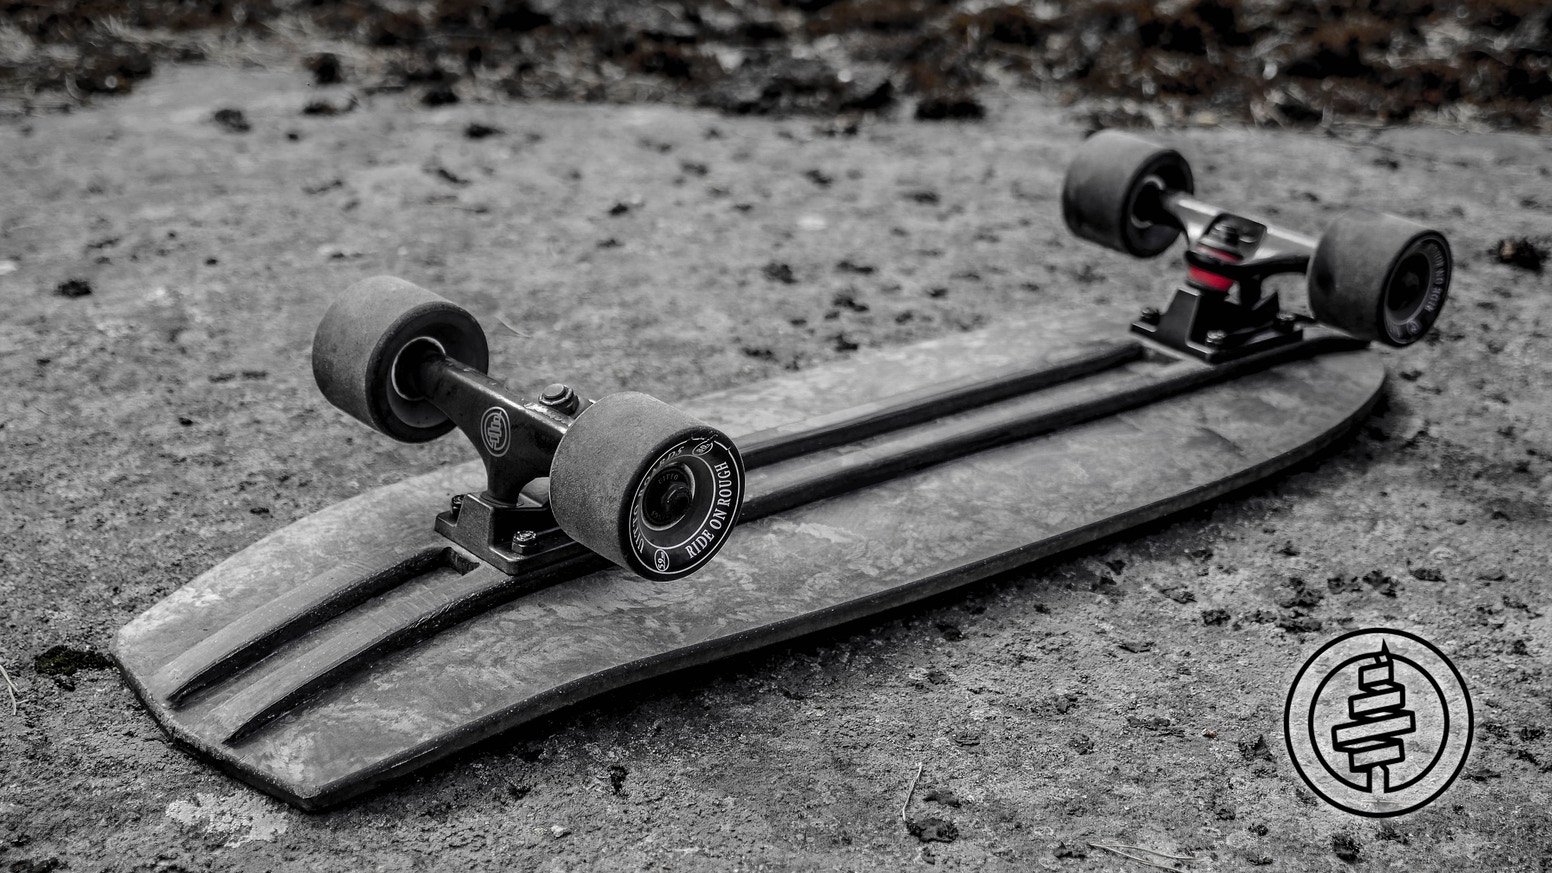 Biocomposite Skateboards and Mugs: Durable, Waterproof and 100% Recyclable